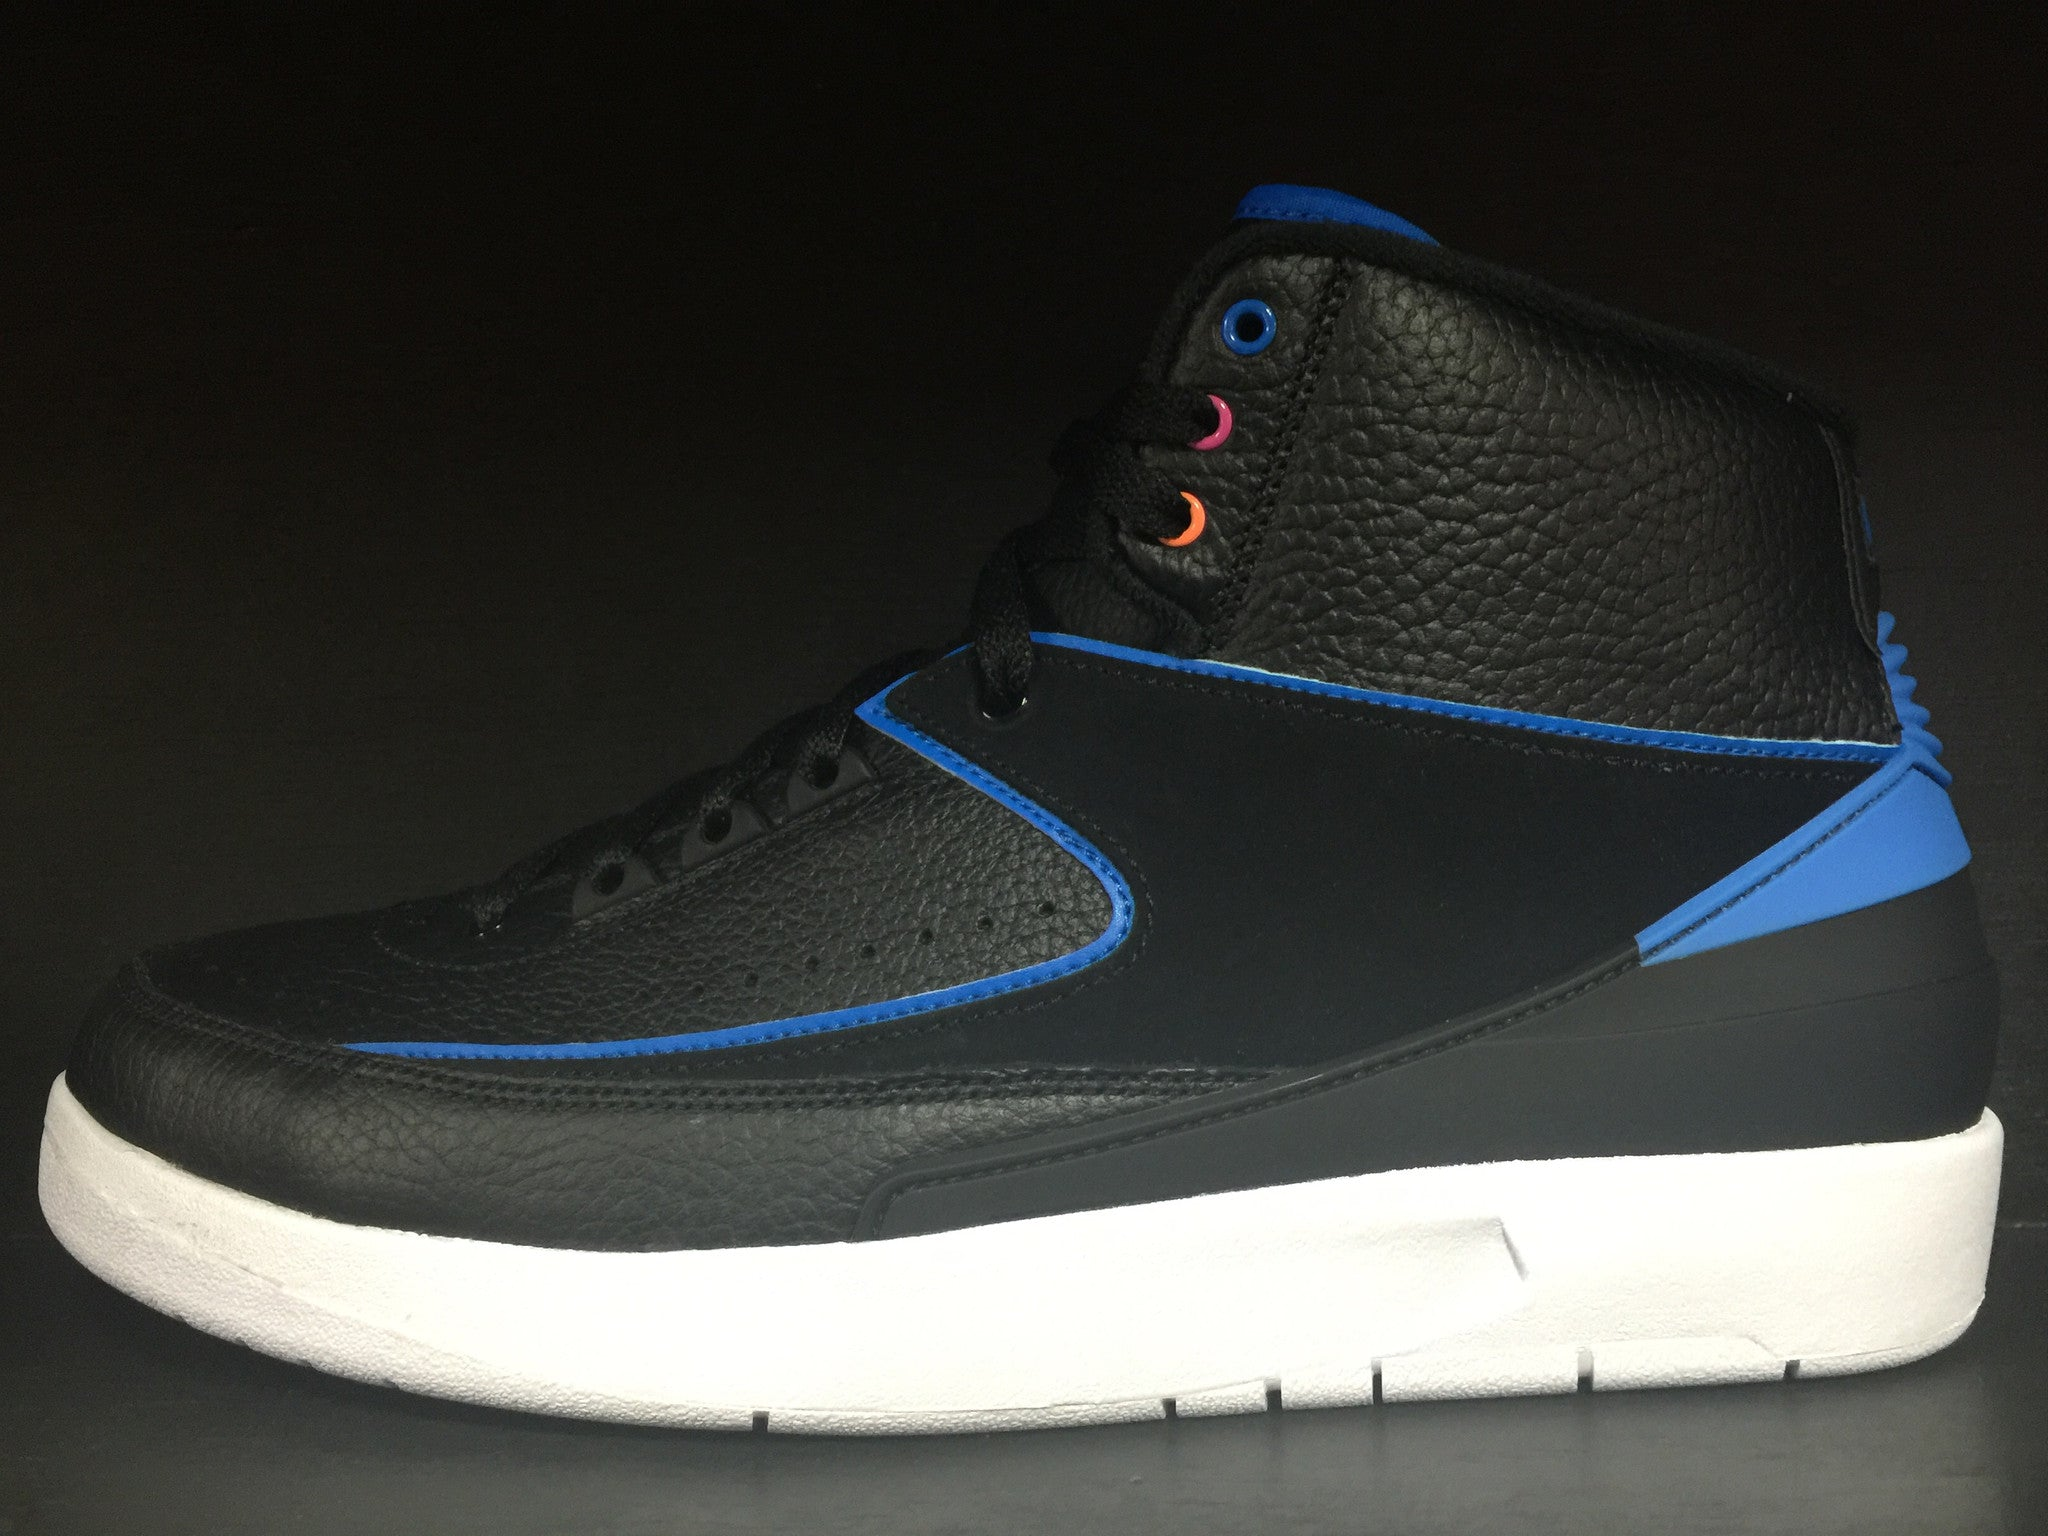 Air Jordan 2 Retro 'Radio Raheem'